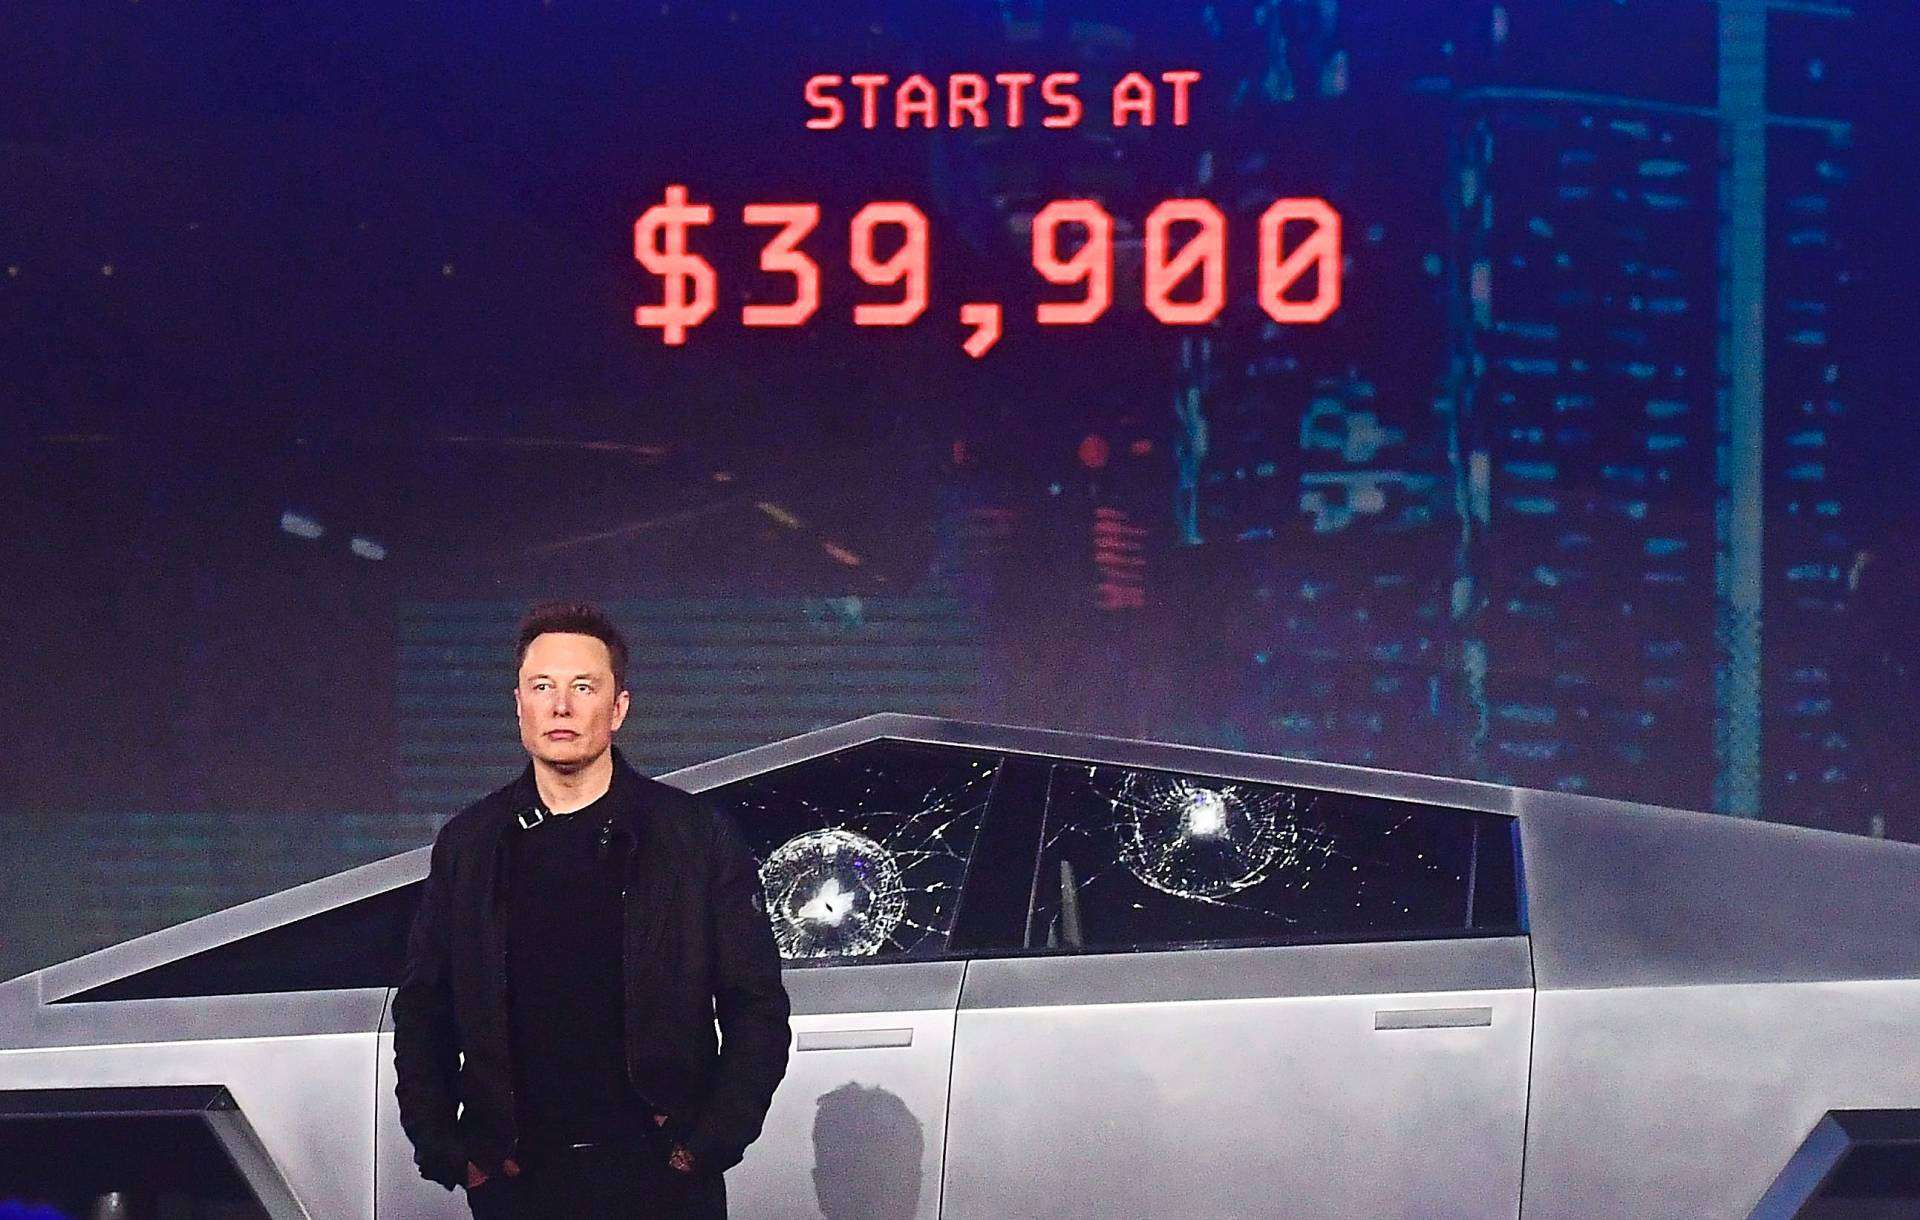 The great unveiling of Tesla Cybertruck didn't go as planned for Musk. — AFP